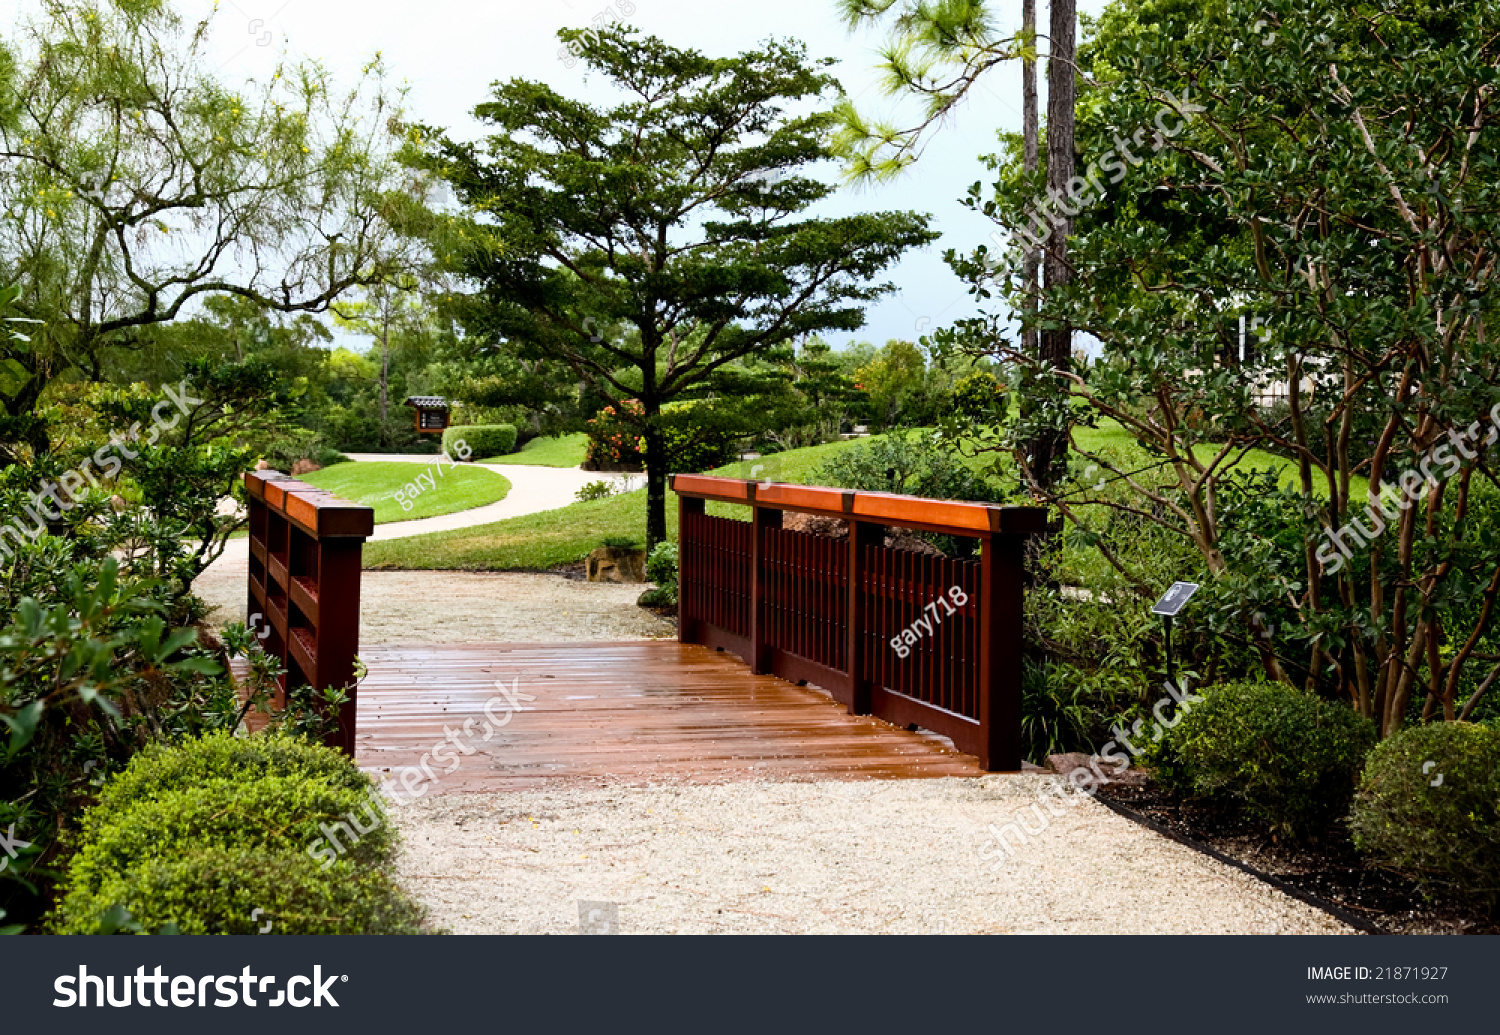 Florida S Natural Site Background Wood